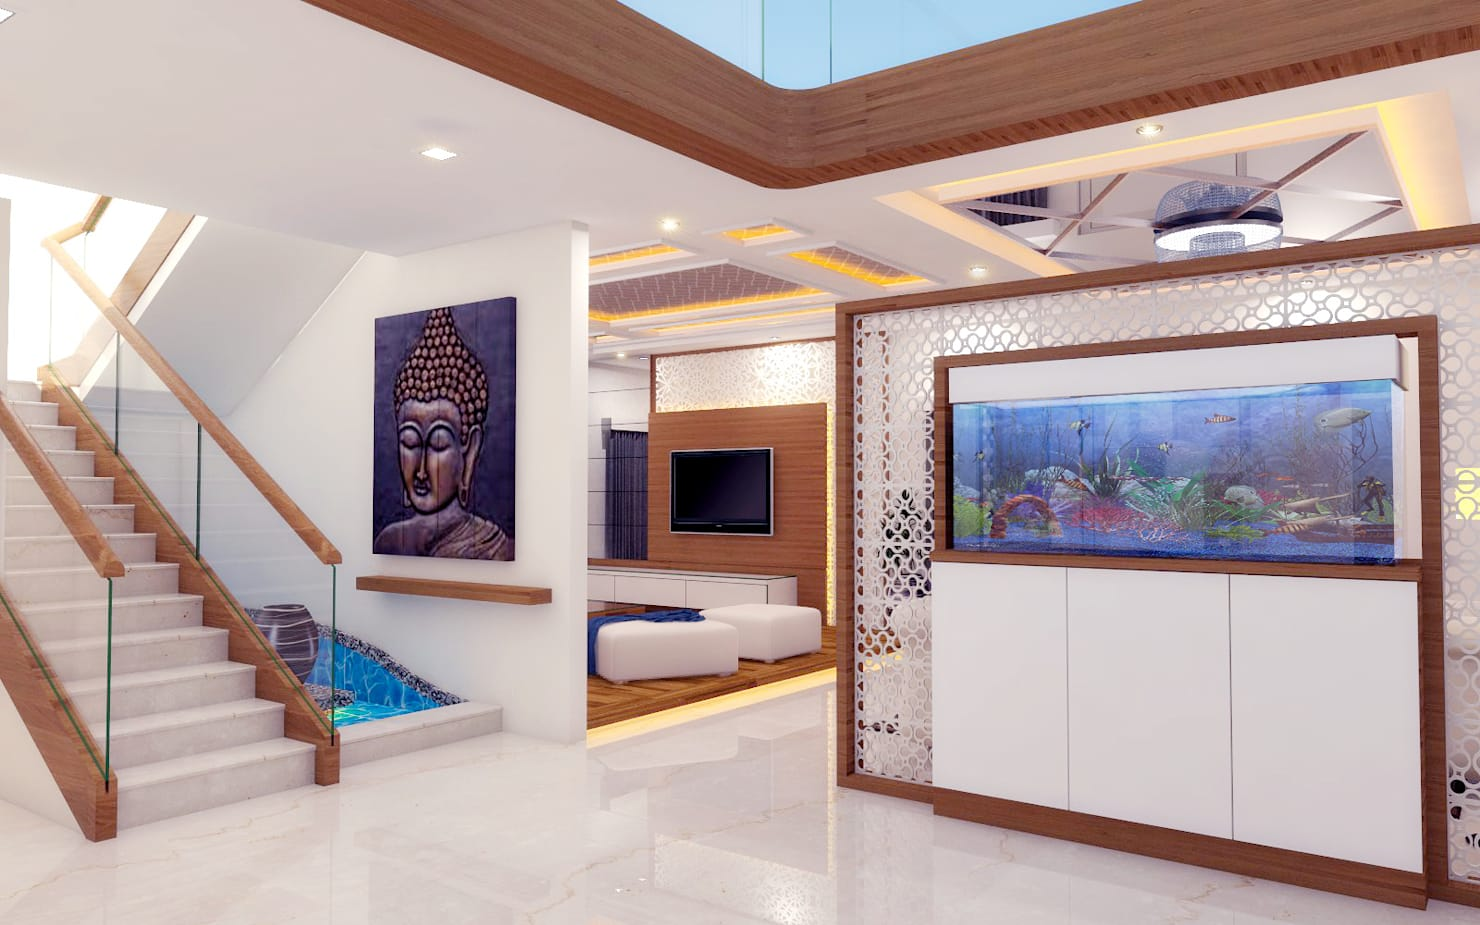 Construction and architectural designs by interior decorators in Hyderabad